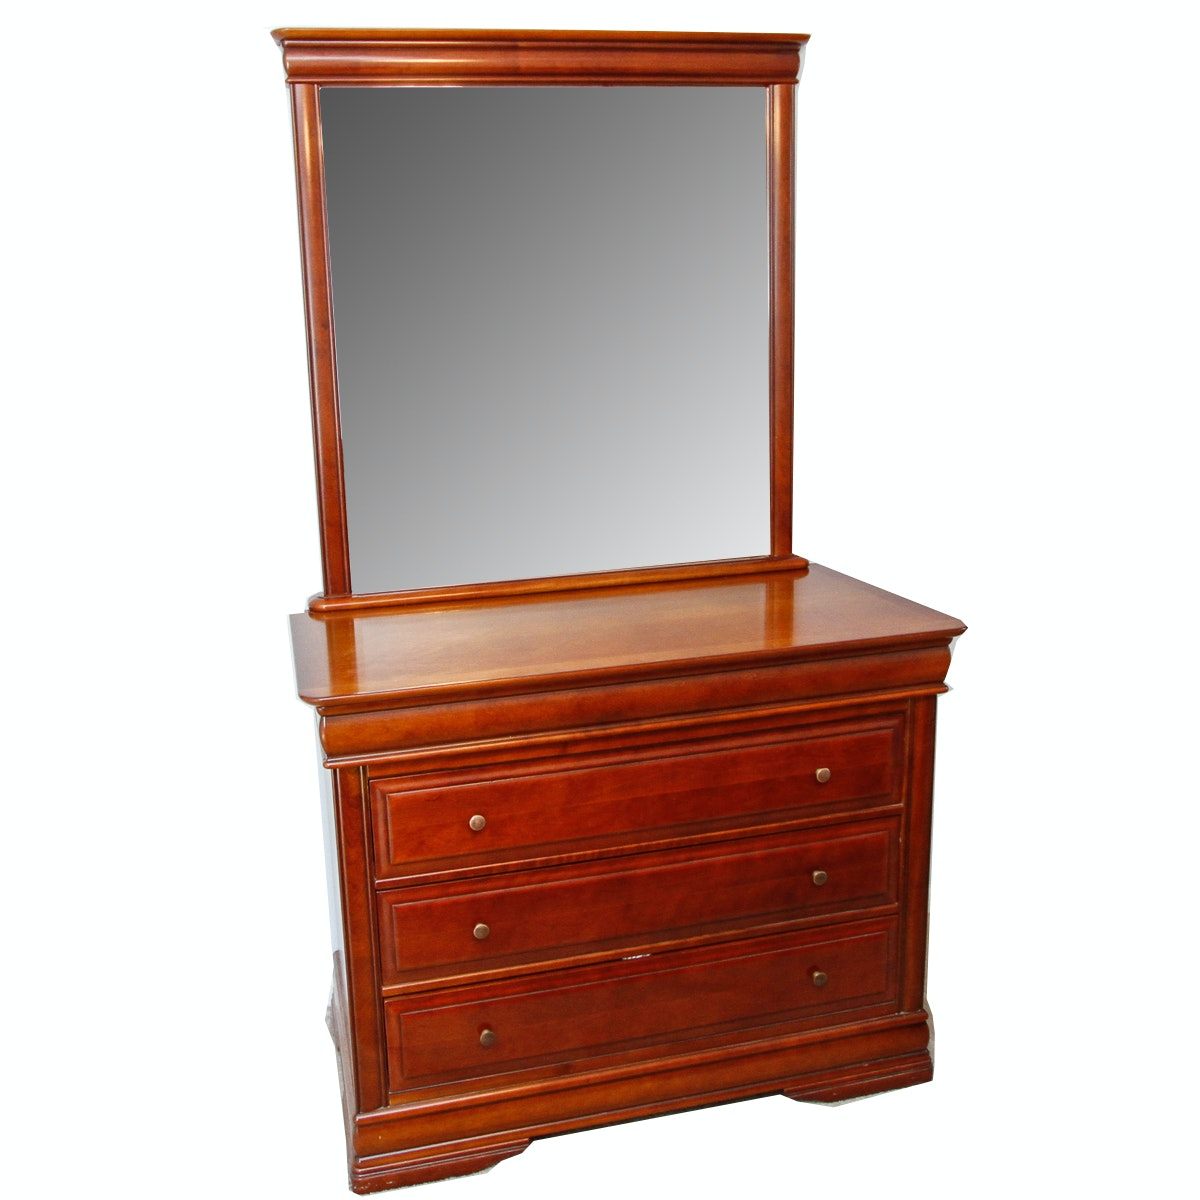 Cherry-Finished Chest of Drawers and Mirror